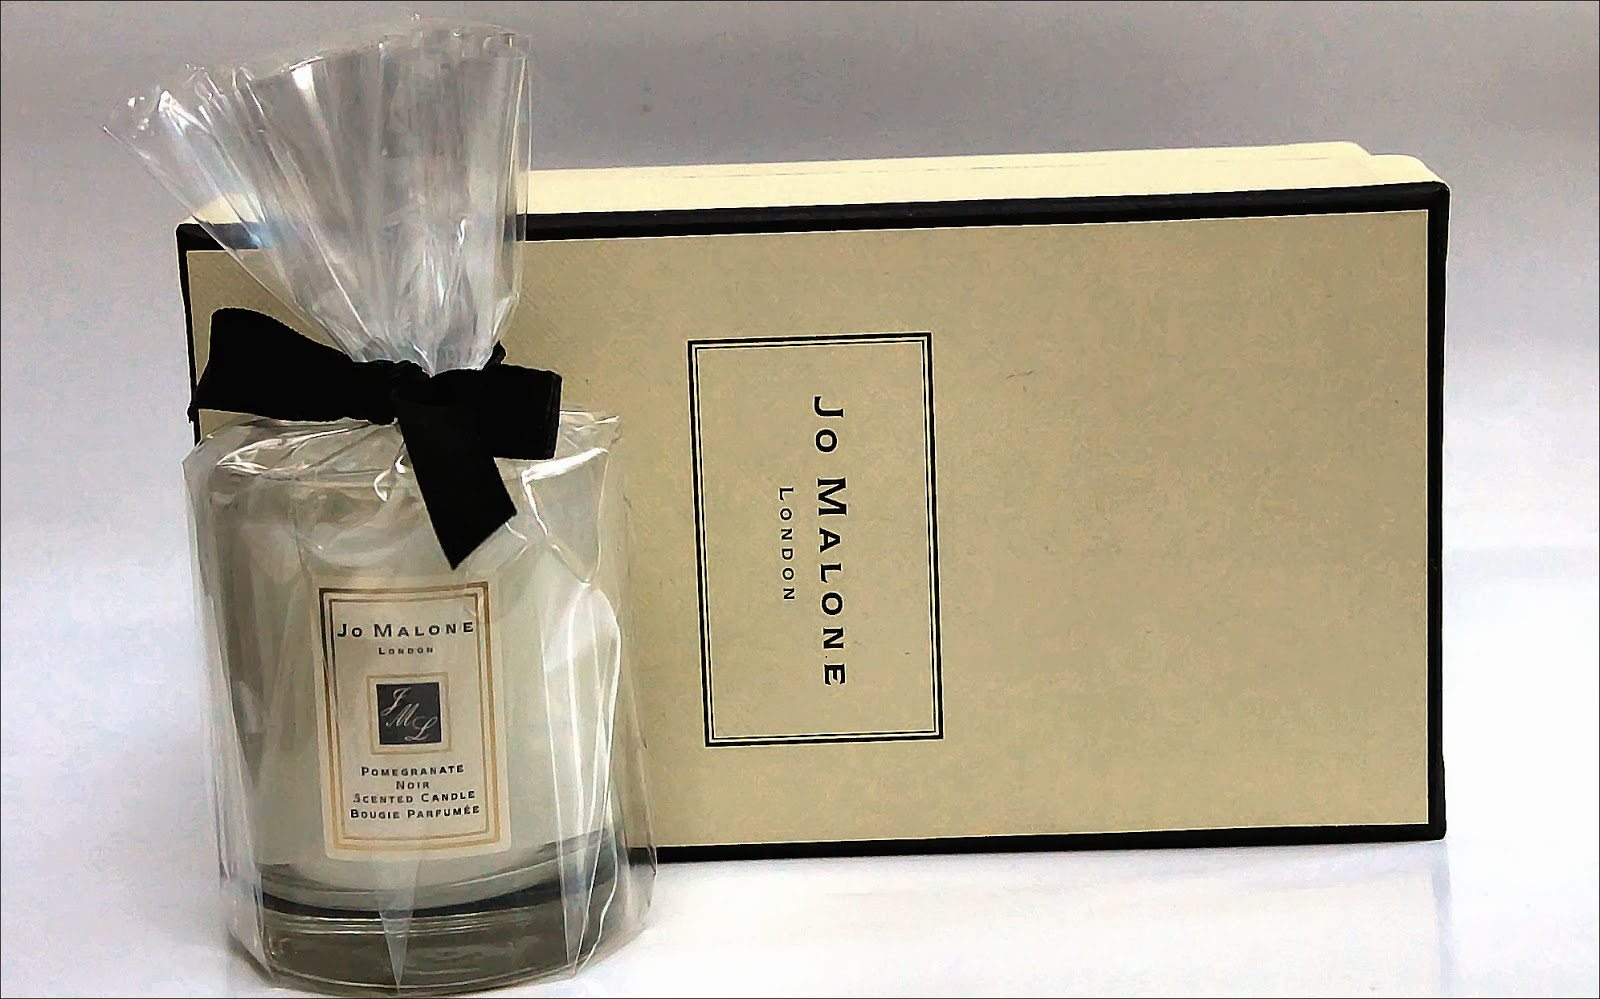 Jo Malone Pomegranate Scented Candle